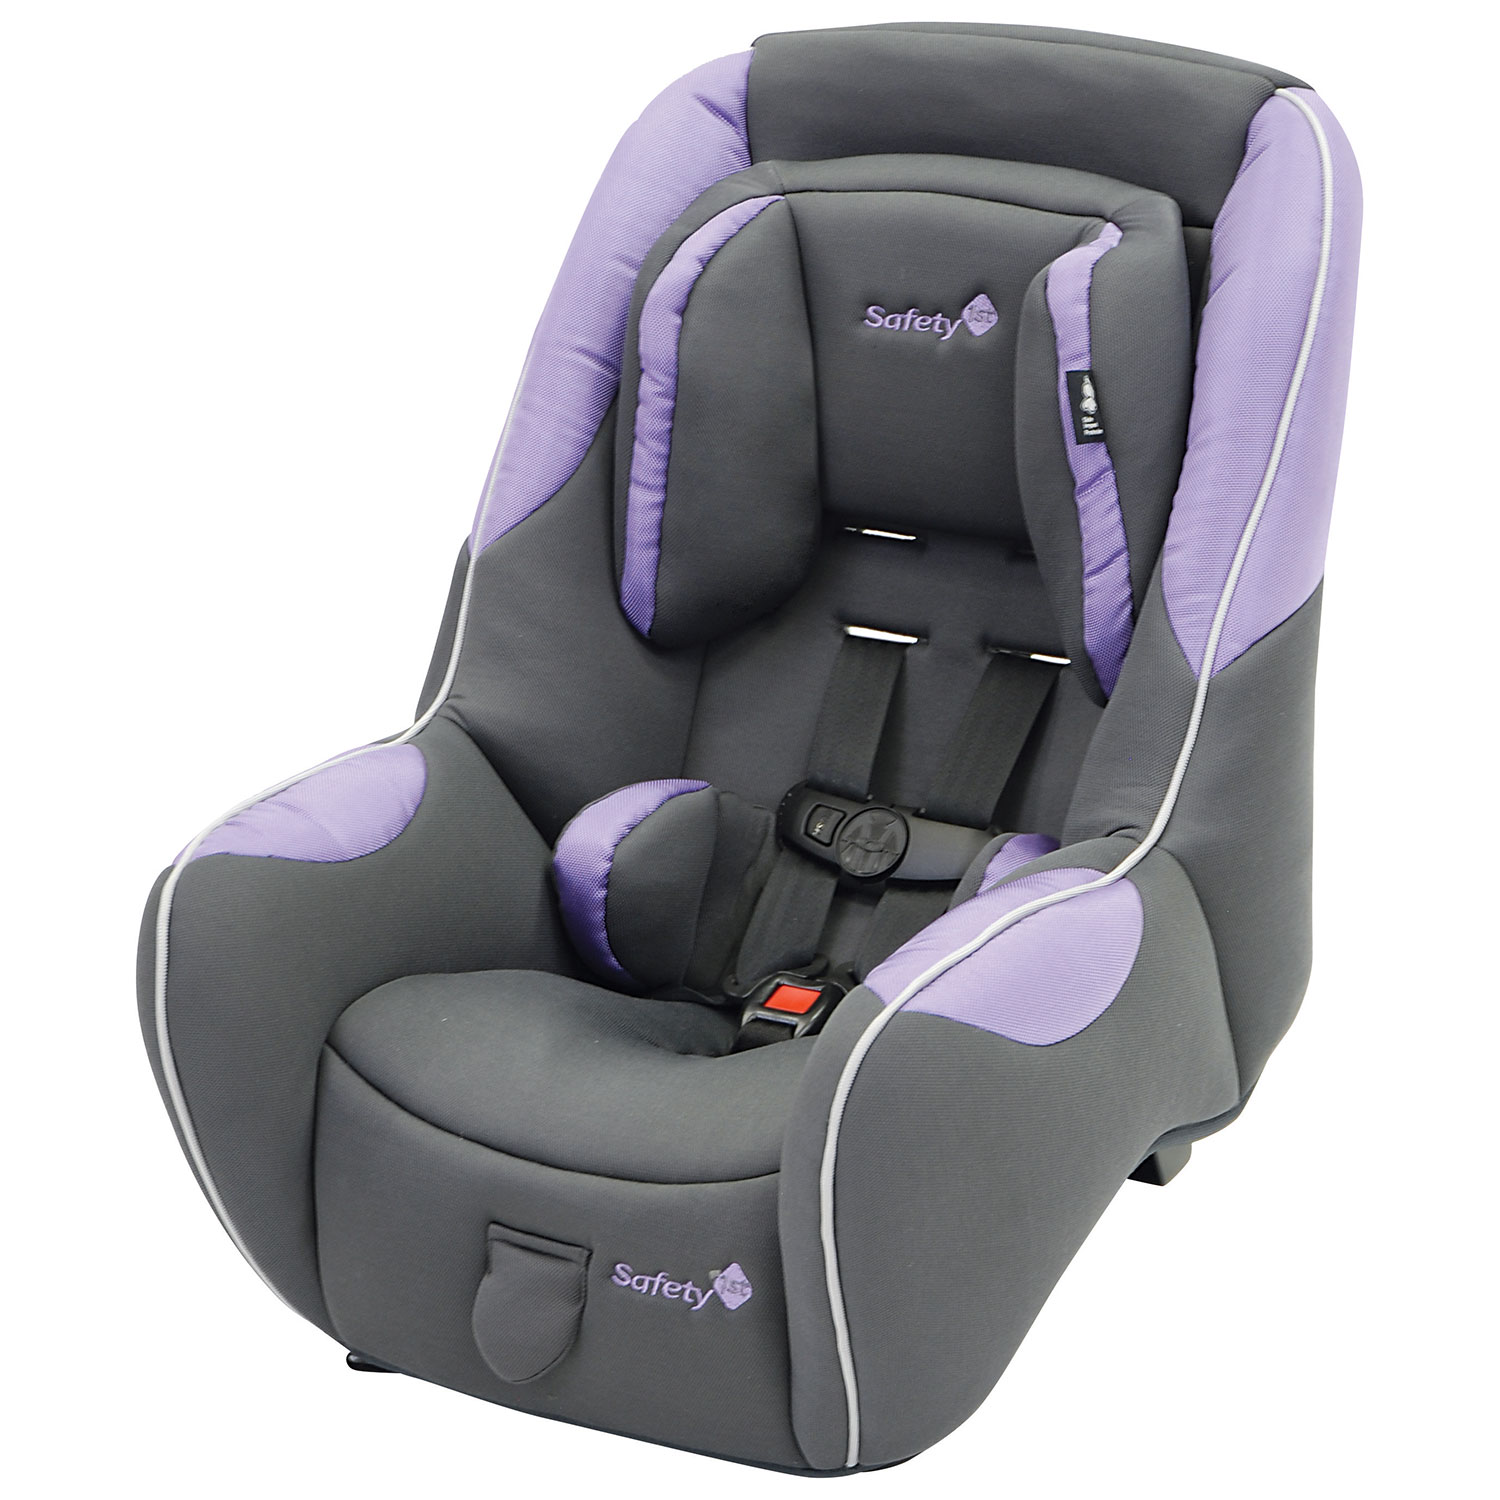 Safety 1st Guide 65 2 In 1 Convertible Car Seat